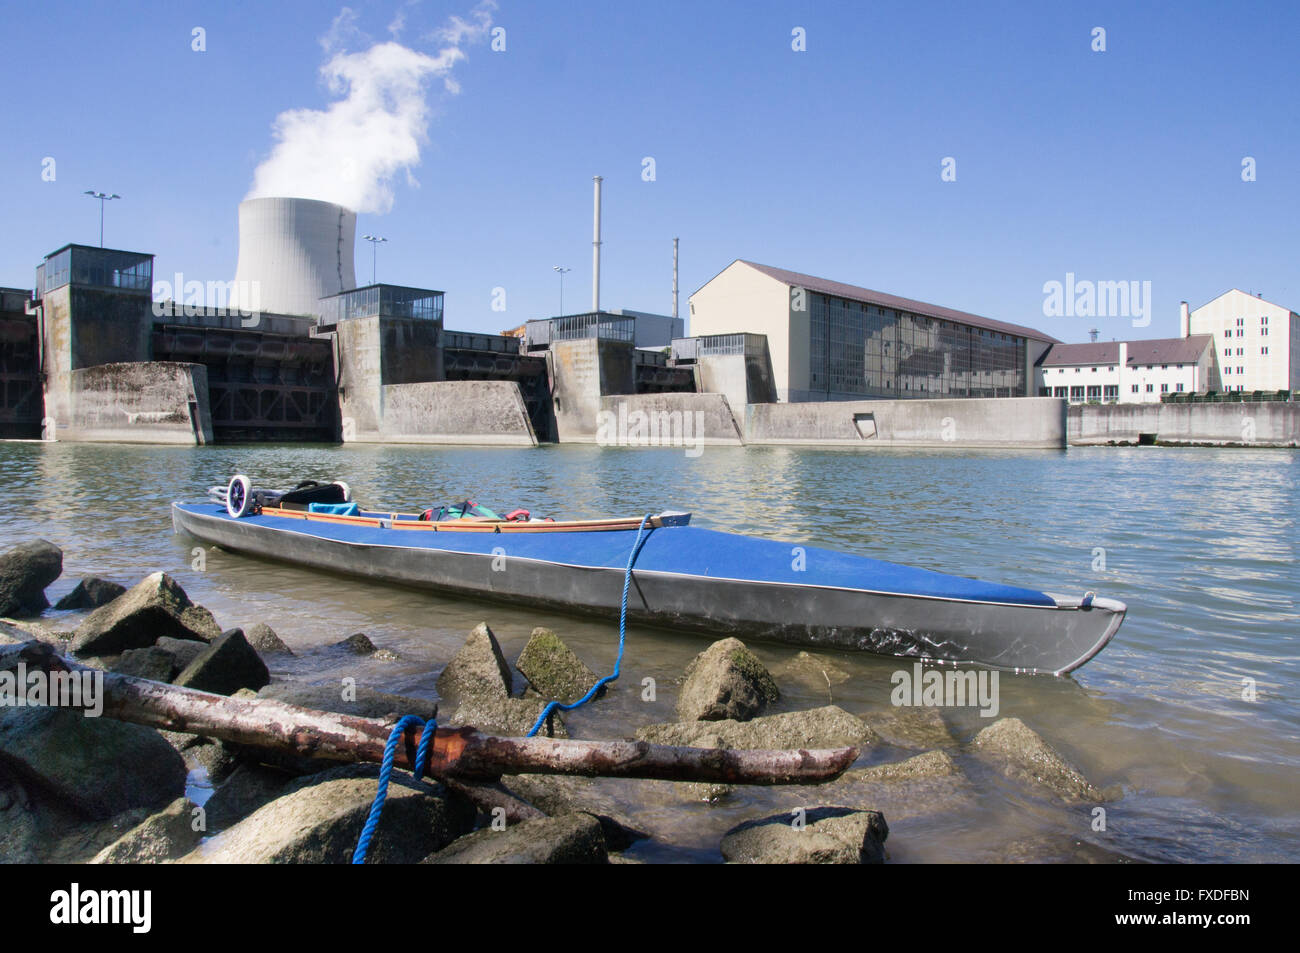 little folding boat in front of nuclear power plant - Stock Image